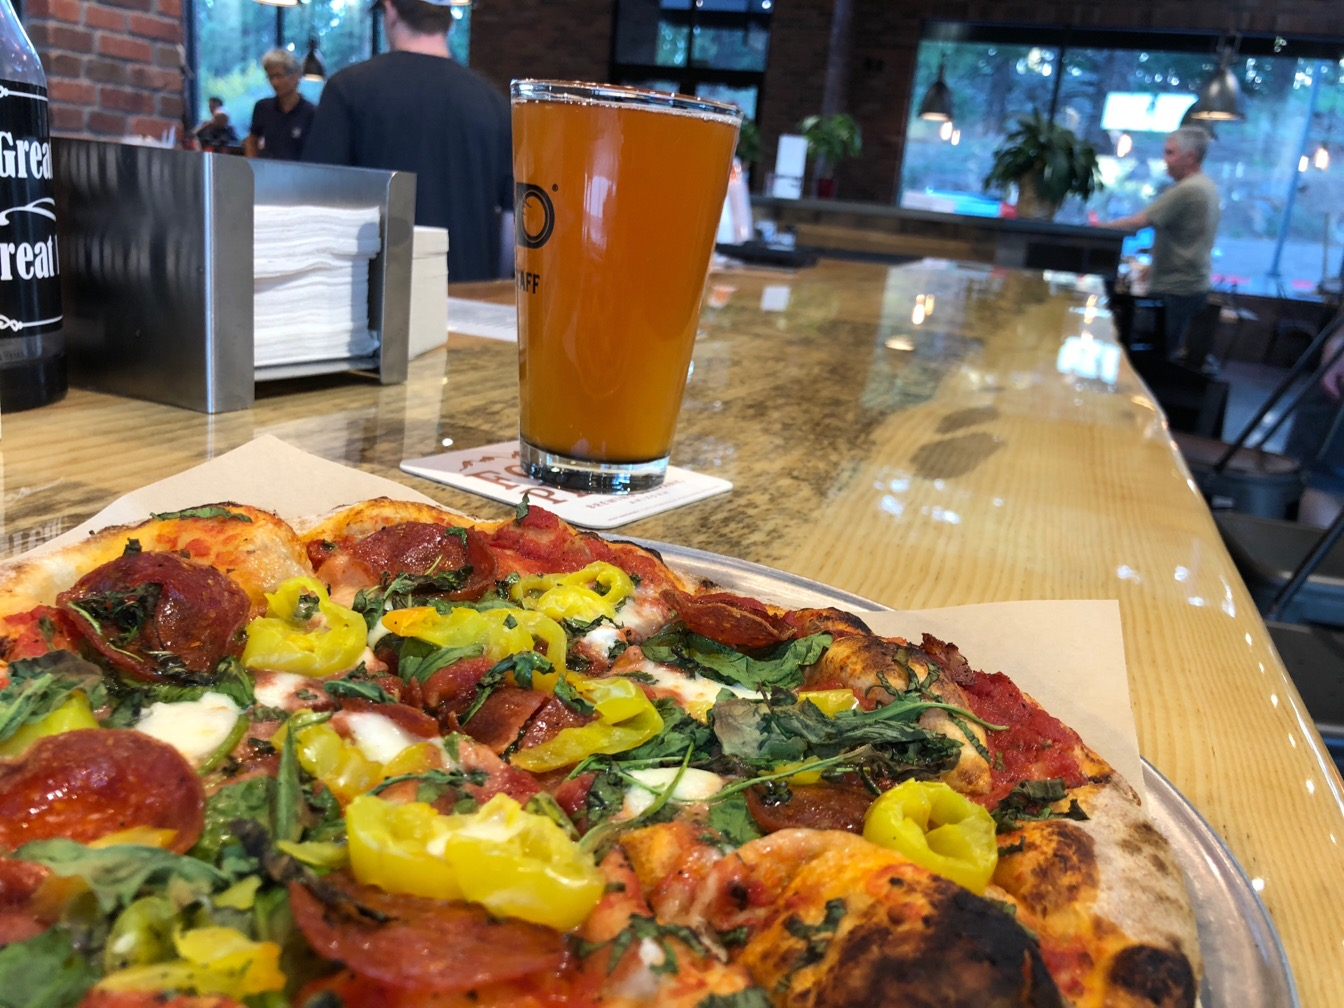 Pizza and beer on a countertop